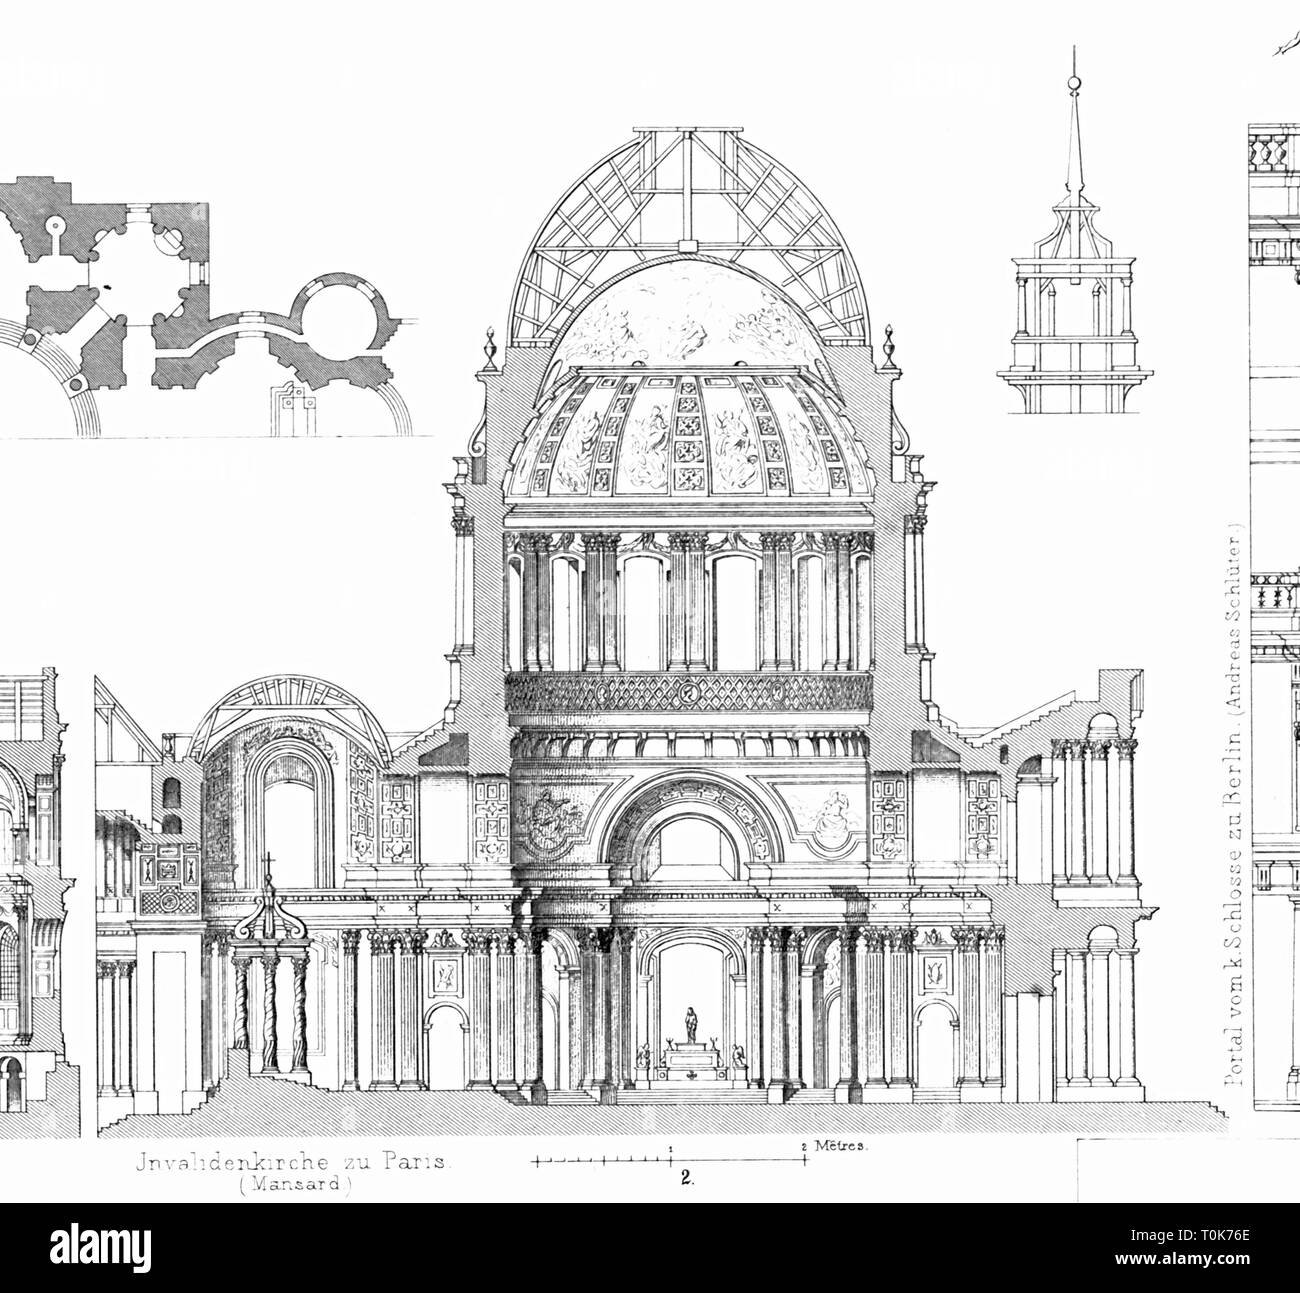 geography / travel, France, Paris, churches, Chapel of Saint-Louis-des-Invalides, built: 1670 - 1679, architect: Jules Hardouin Mansart, cross-section, illustration from 'Denkmaeler der Kunst' (Monuments of Art), by Wilhelm Luebke and Carl von Luetzow, 3rd edition, Stuttgart 1879, volume 2, steel engraving by H. Gugeler, after drawing by Wilhelm Riefstahl, chapter on architecture, plate L, Western Europe, churches, architecture, 17th century, church, baroque, sacred, religious, building, buildings, historic, historical, Denkmaler, Denkmäler, Lübk, Additional-Rights-Clearance-Info-Not-Available - Stock Image